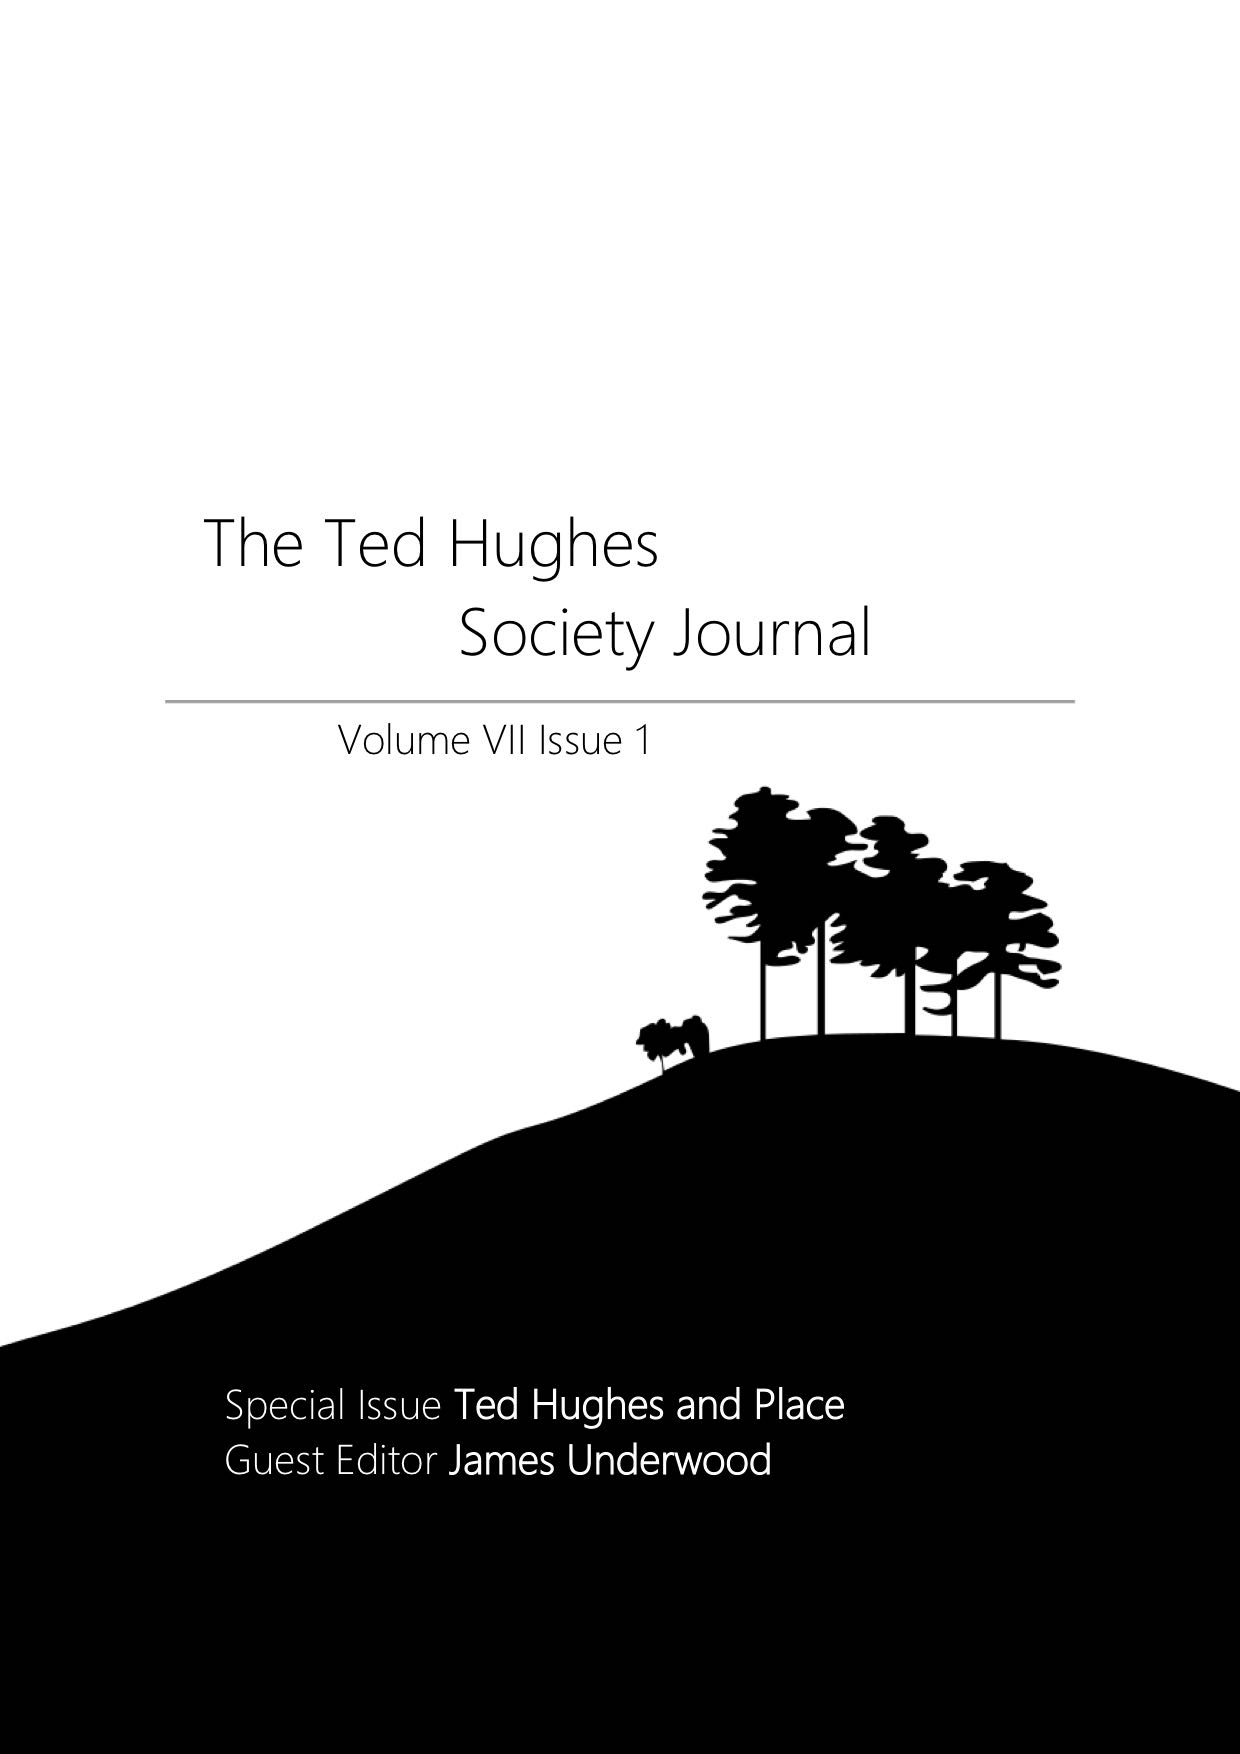 The Ted Hughes Society Journal VII.1.jpg